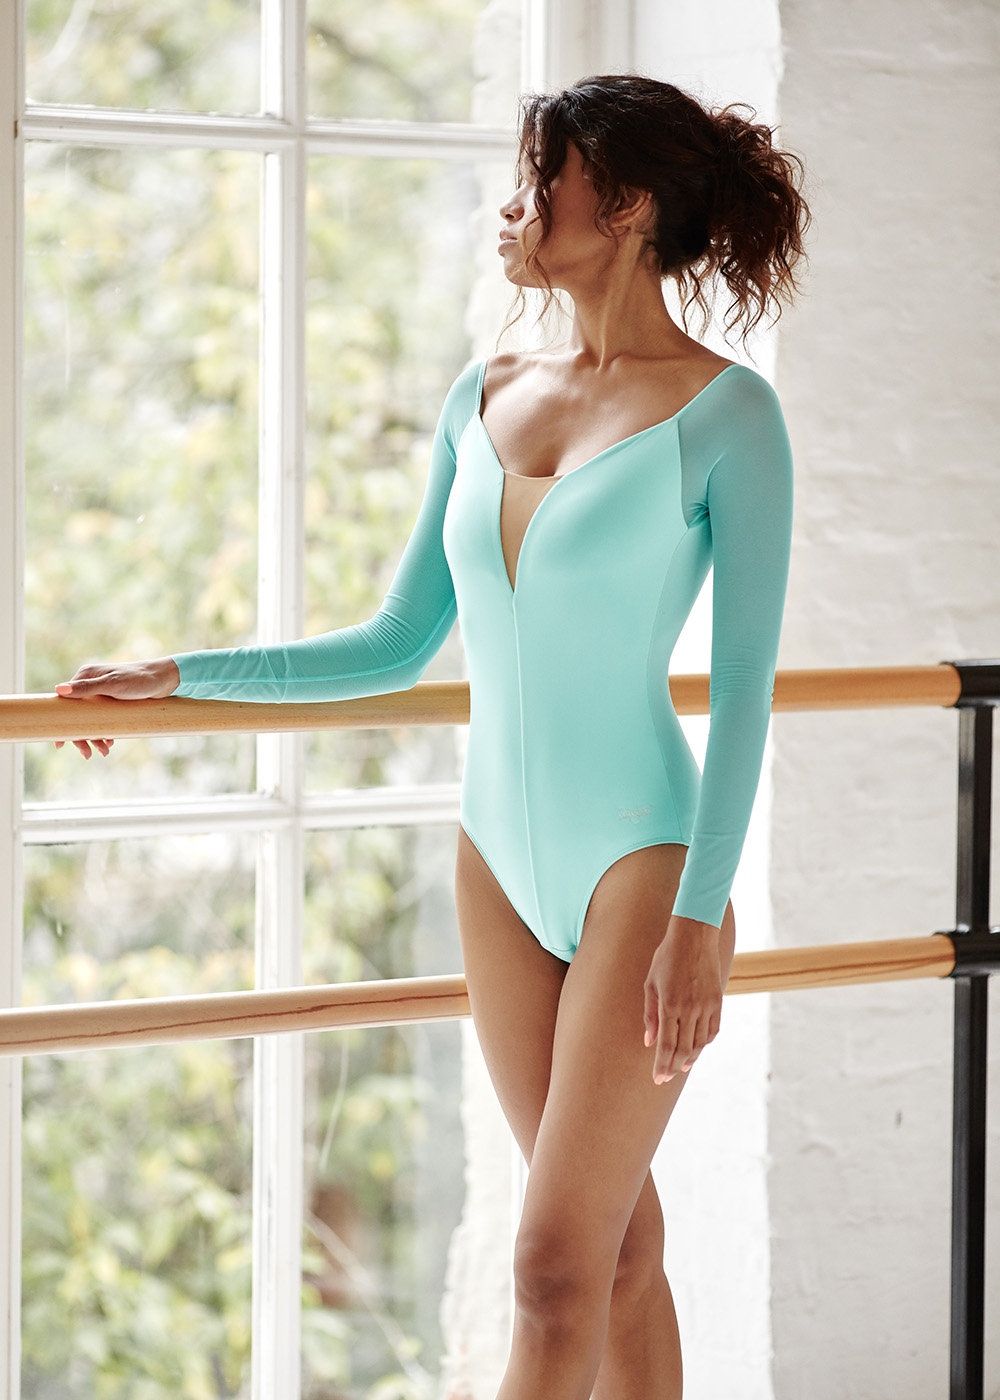 New Cambre style! ballet leotard by Yukitard Ready to Ship